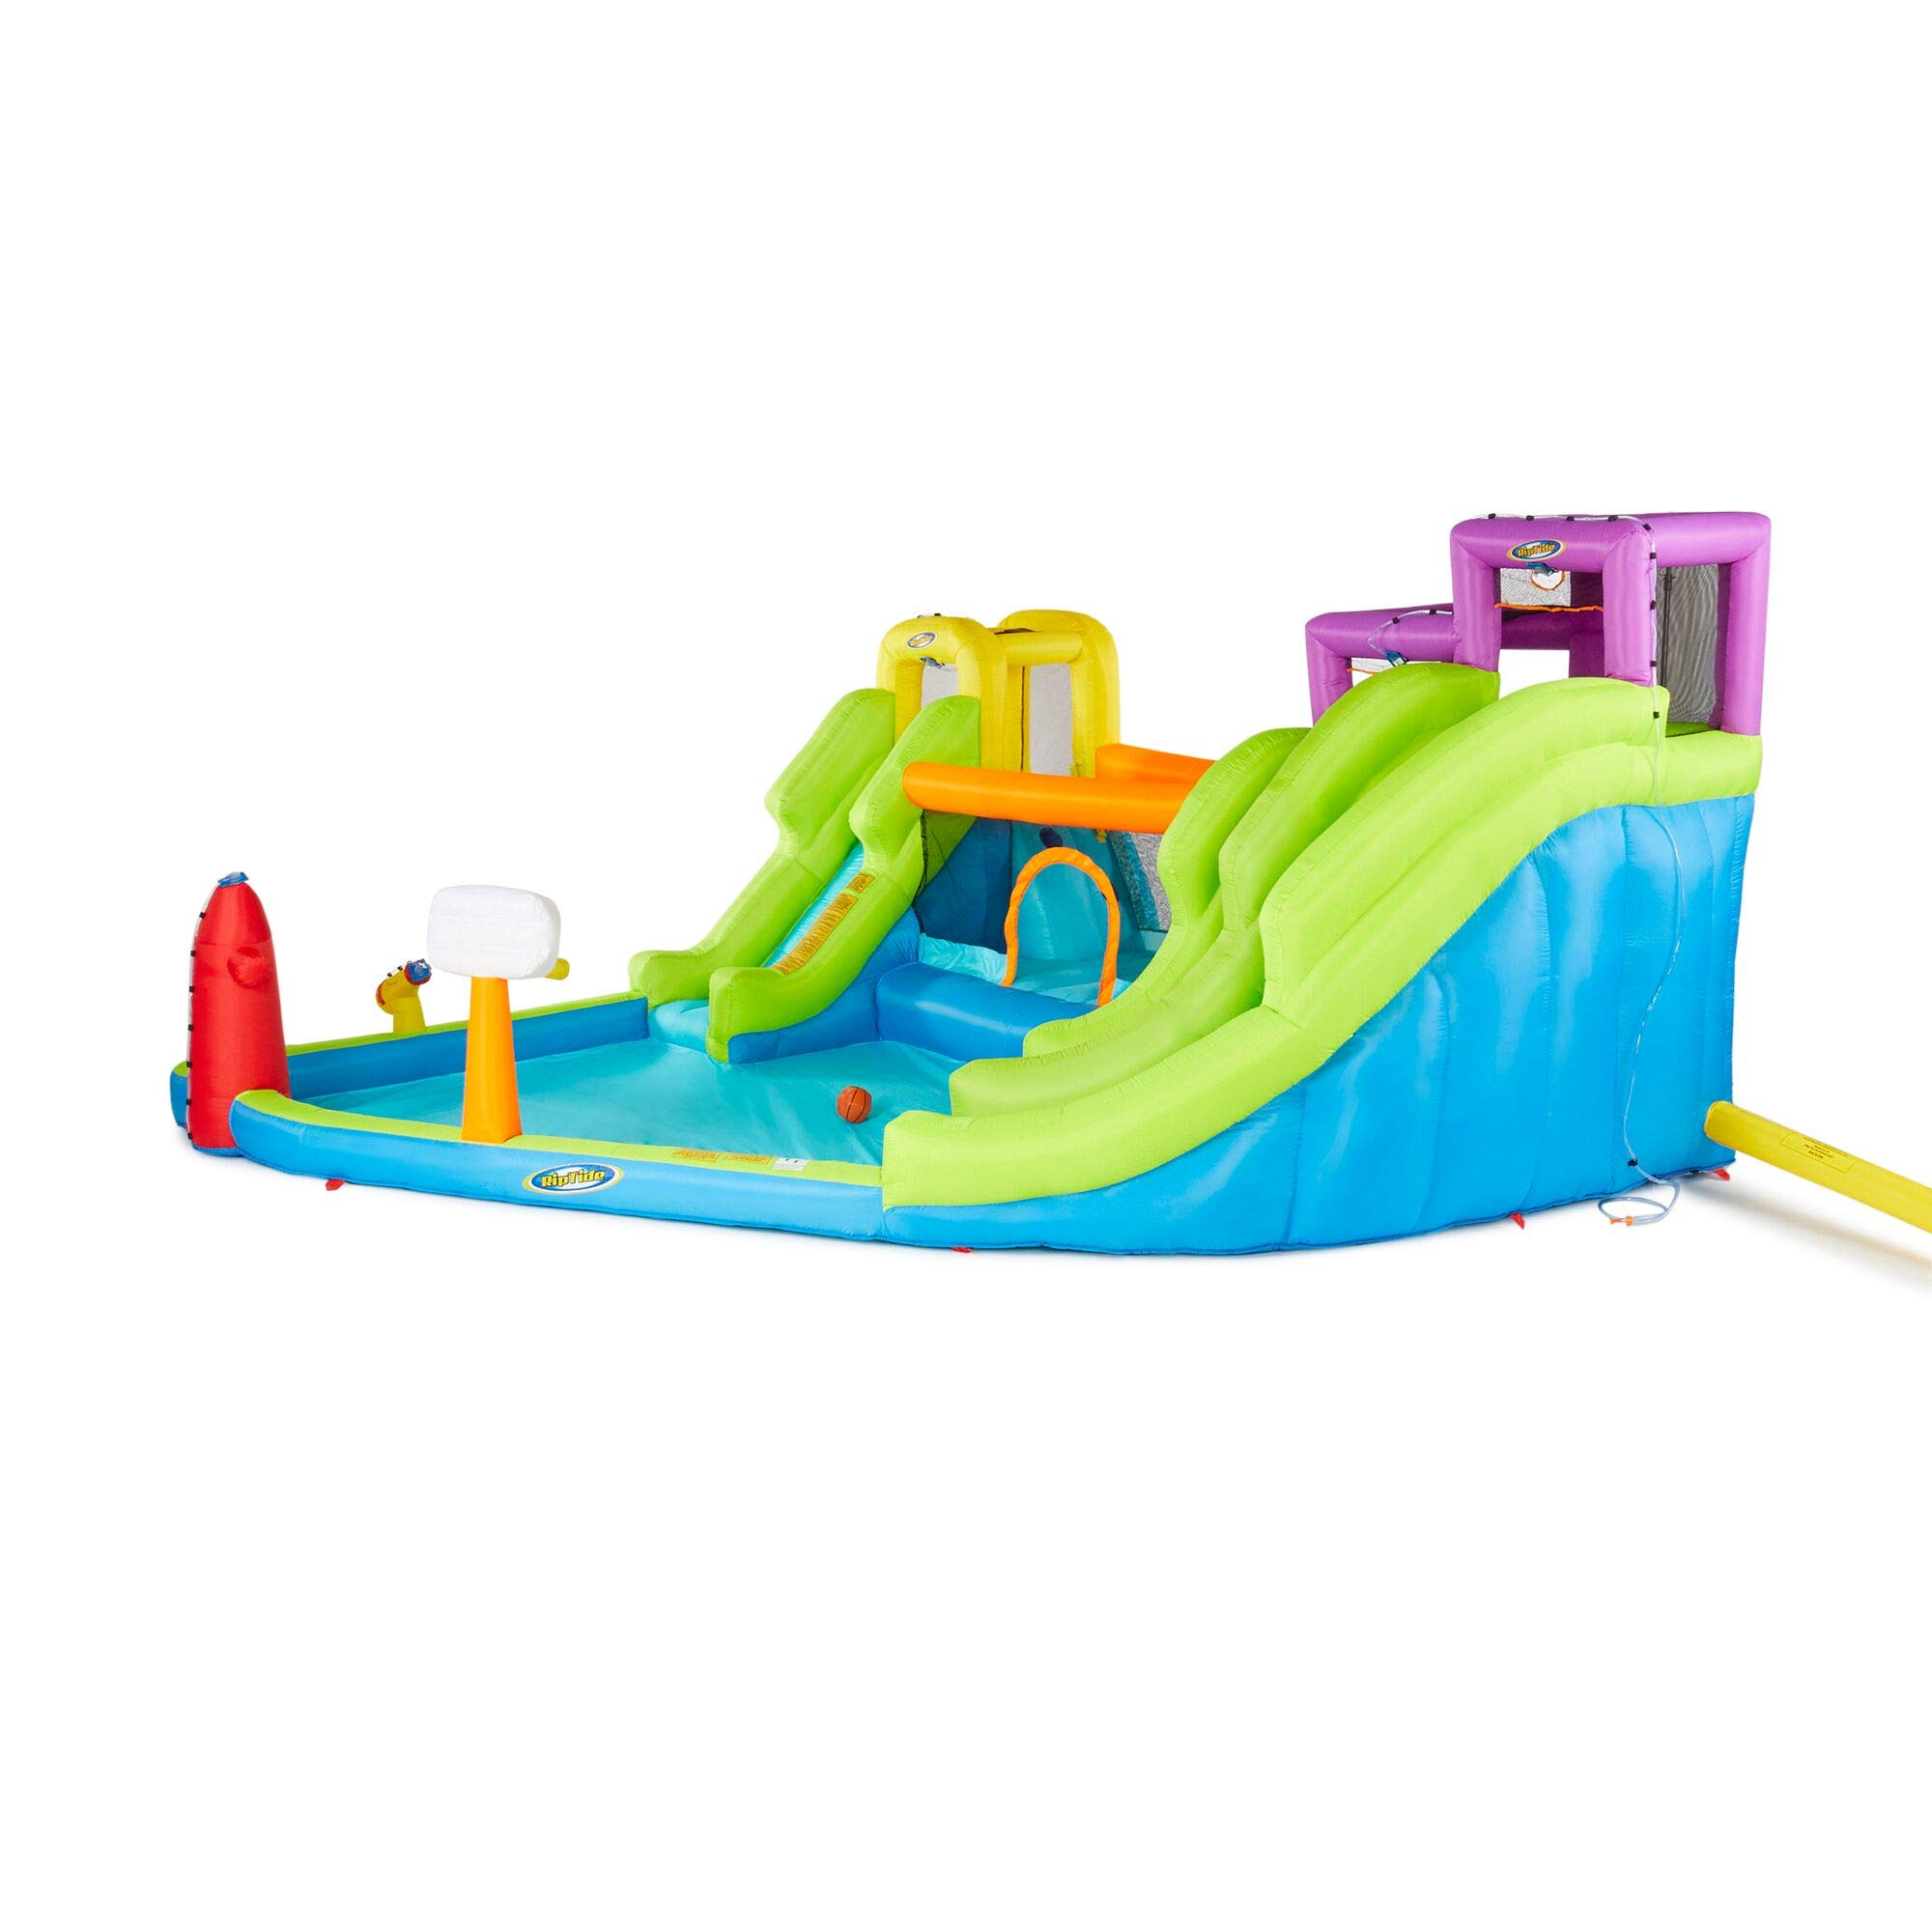 Riptide Triple Fun Inflatable PVC Water Park with 3 Slides & Obstacle Course by Riptide (Image #4)